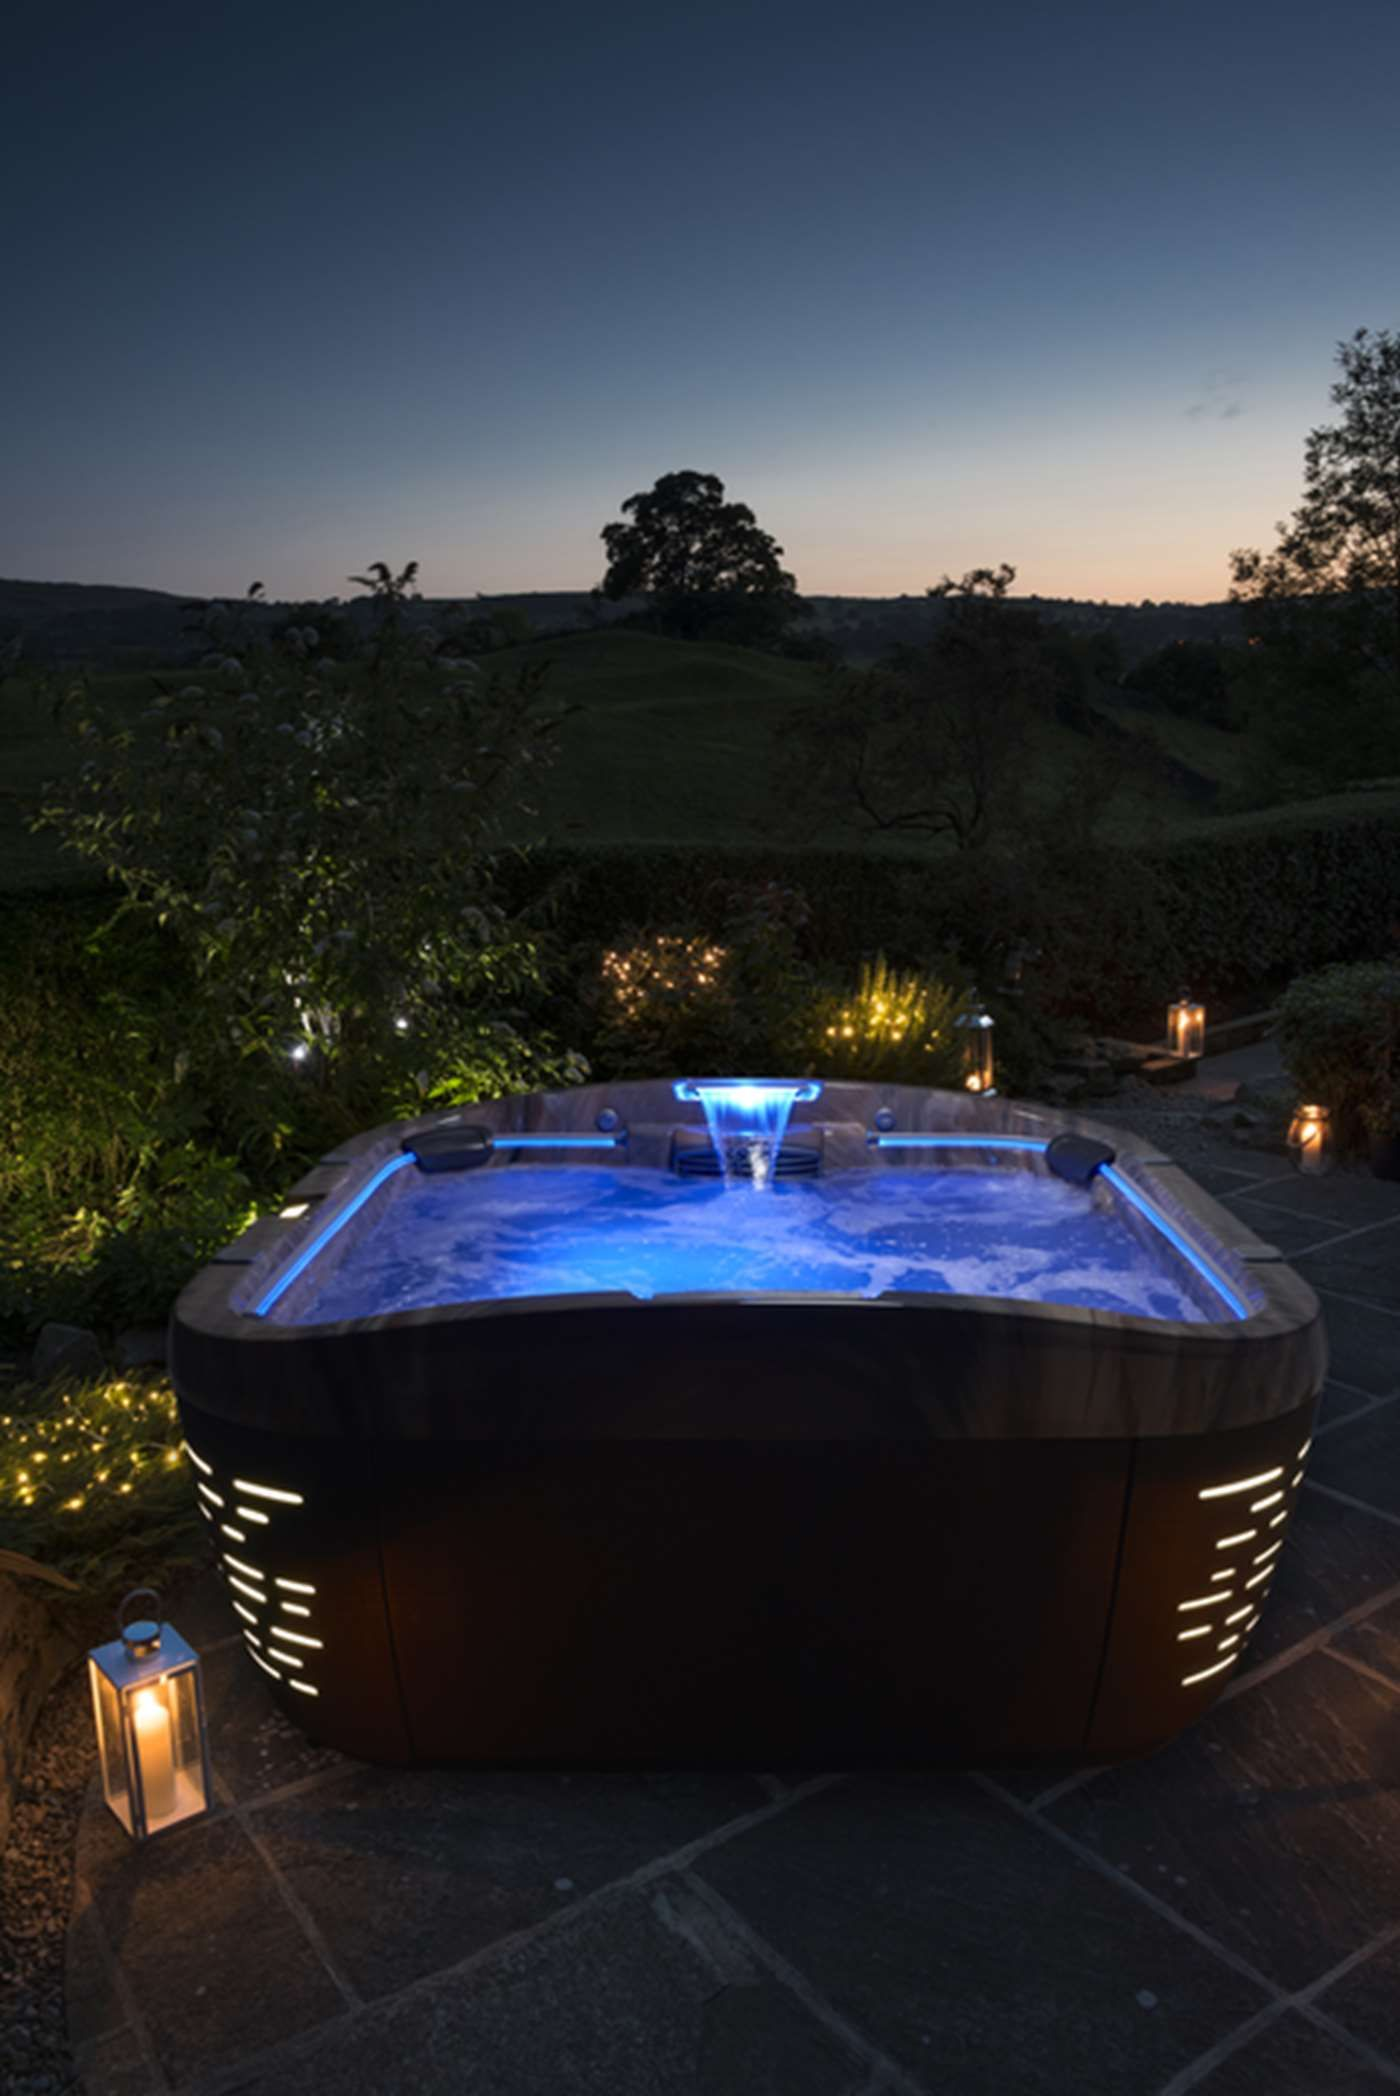 Hot Tub Images Inspiration Gallery Backyard Ideas Jacuzzi Com Jacuzzi Hot Tub Hot Tub Jacuzzi Outdoor